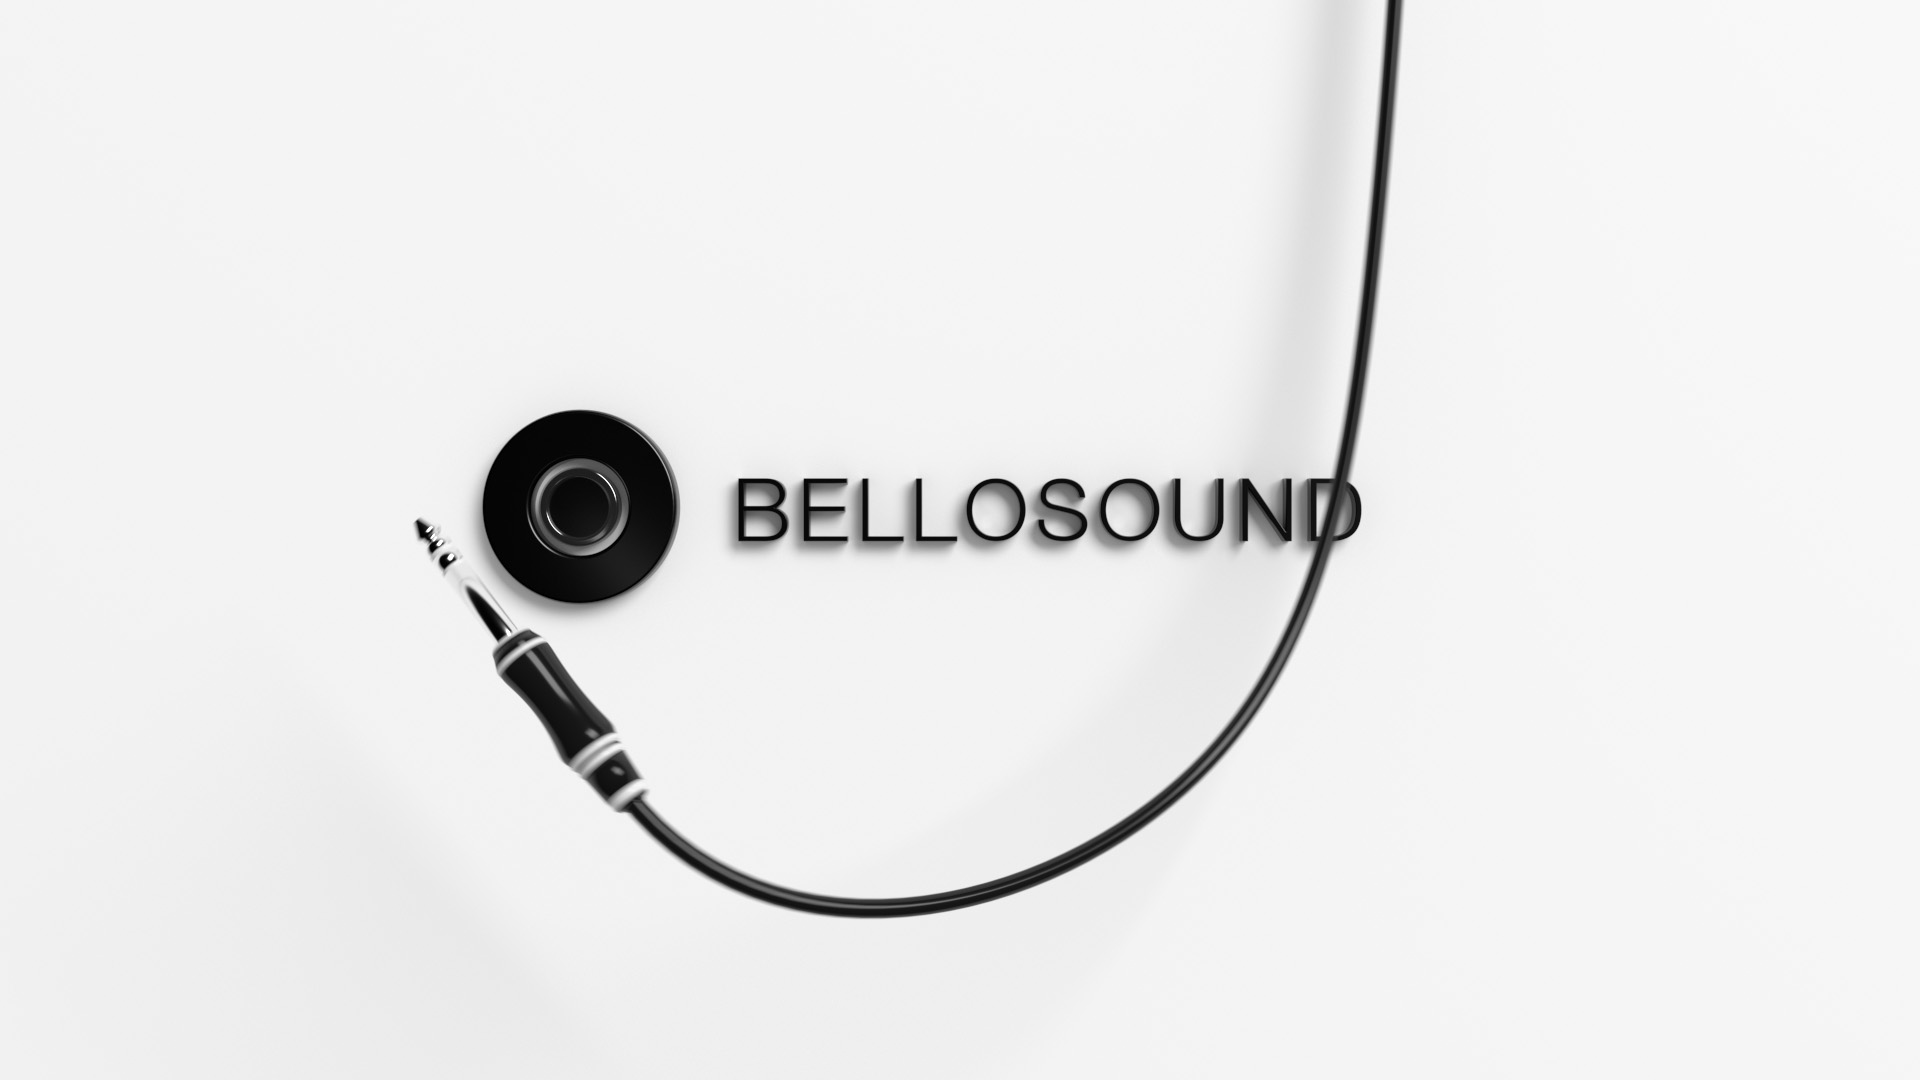 bellosound_lovewhatyouhear_image02